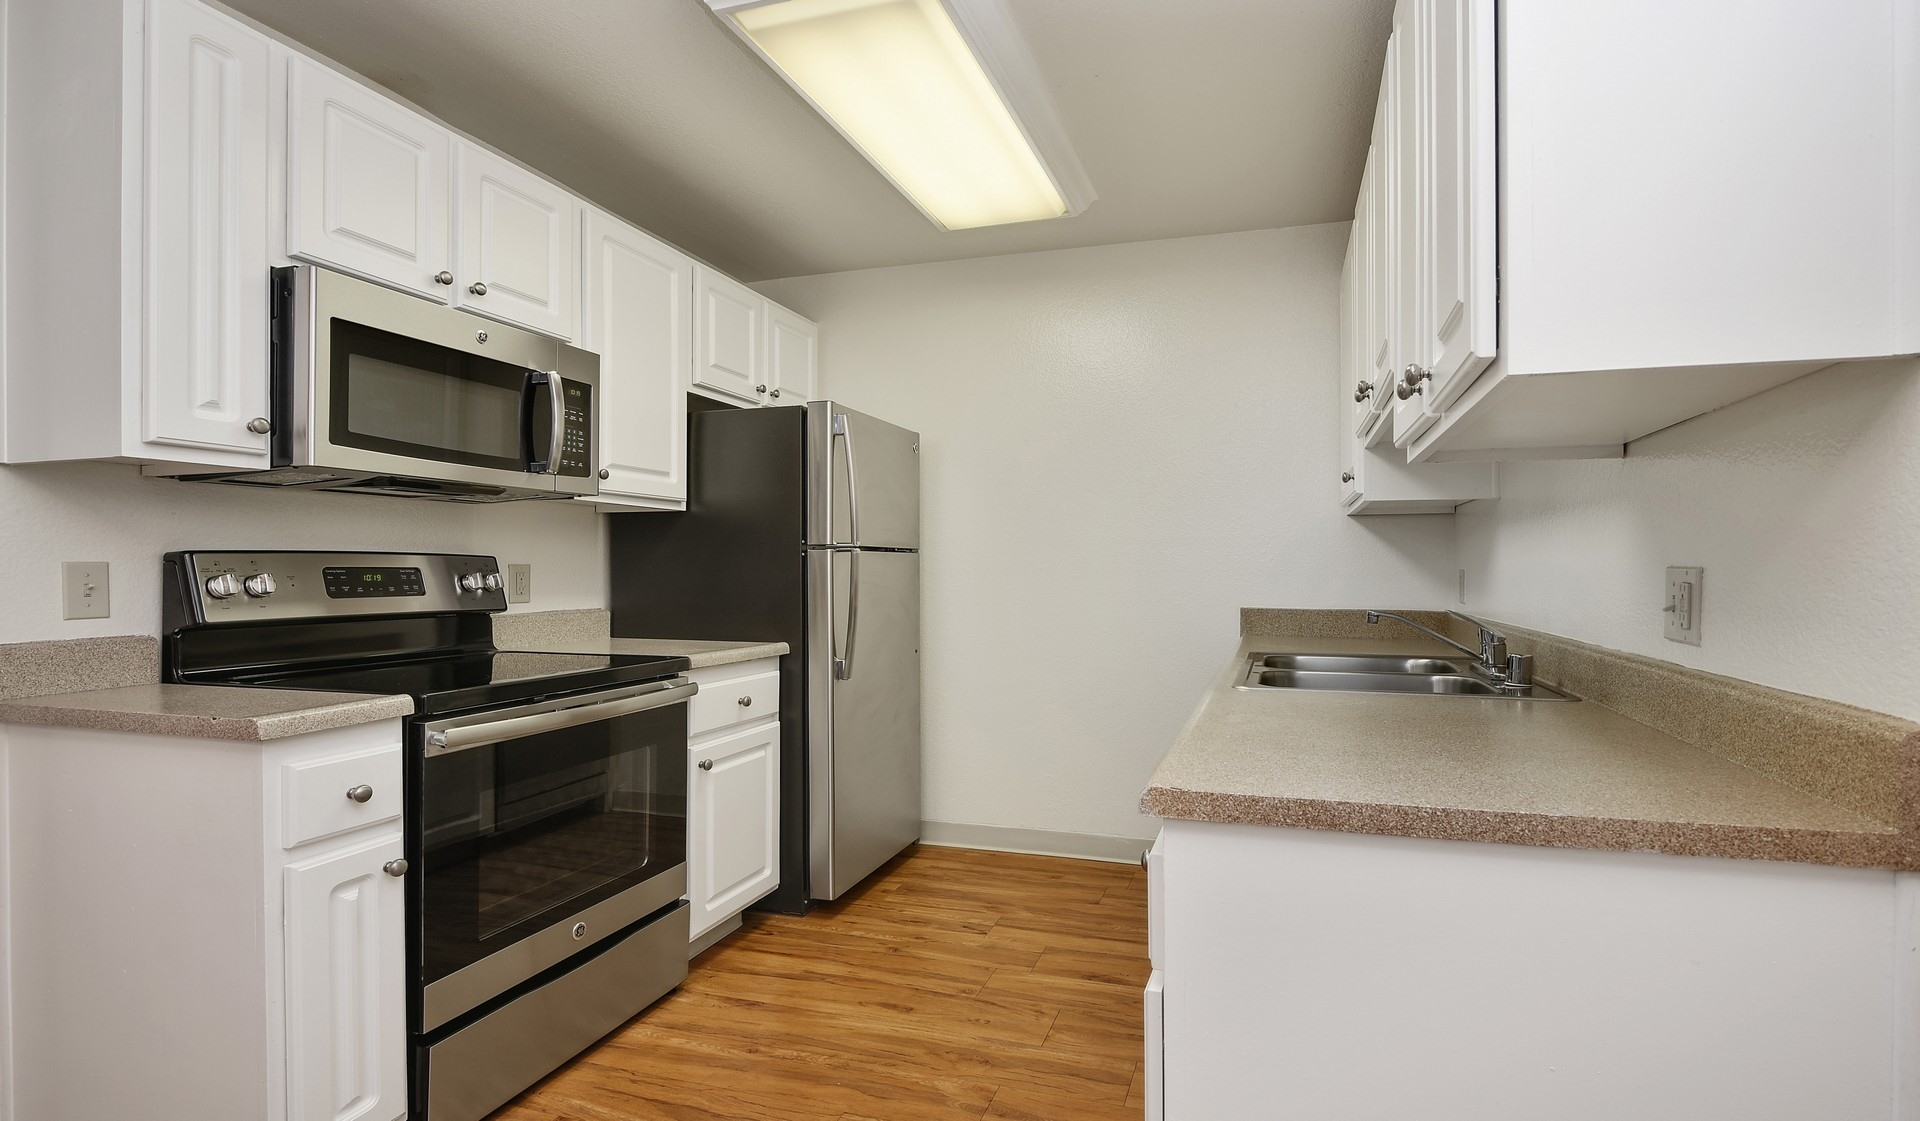 Mariners Cove Apartments - Modern Kitchen - San Diego, CA